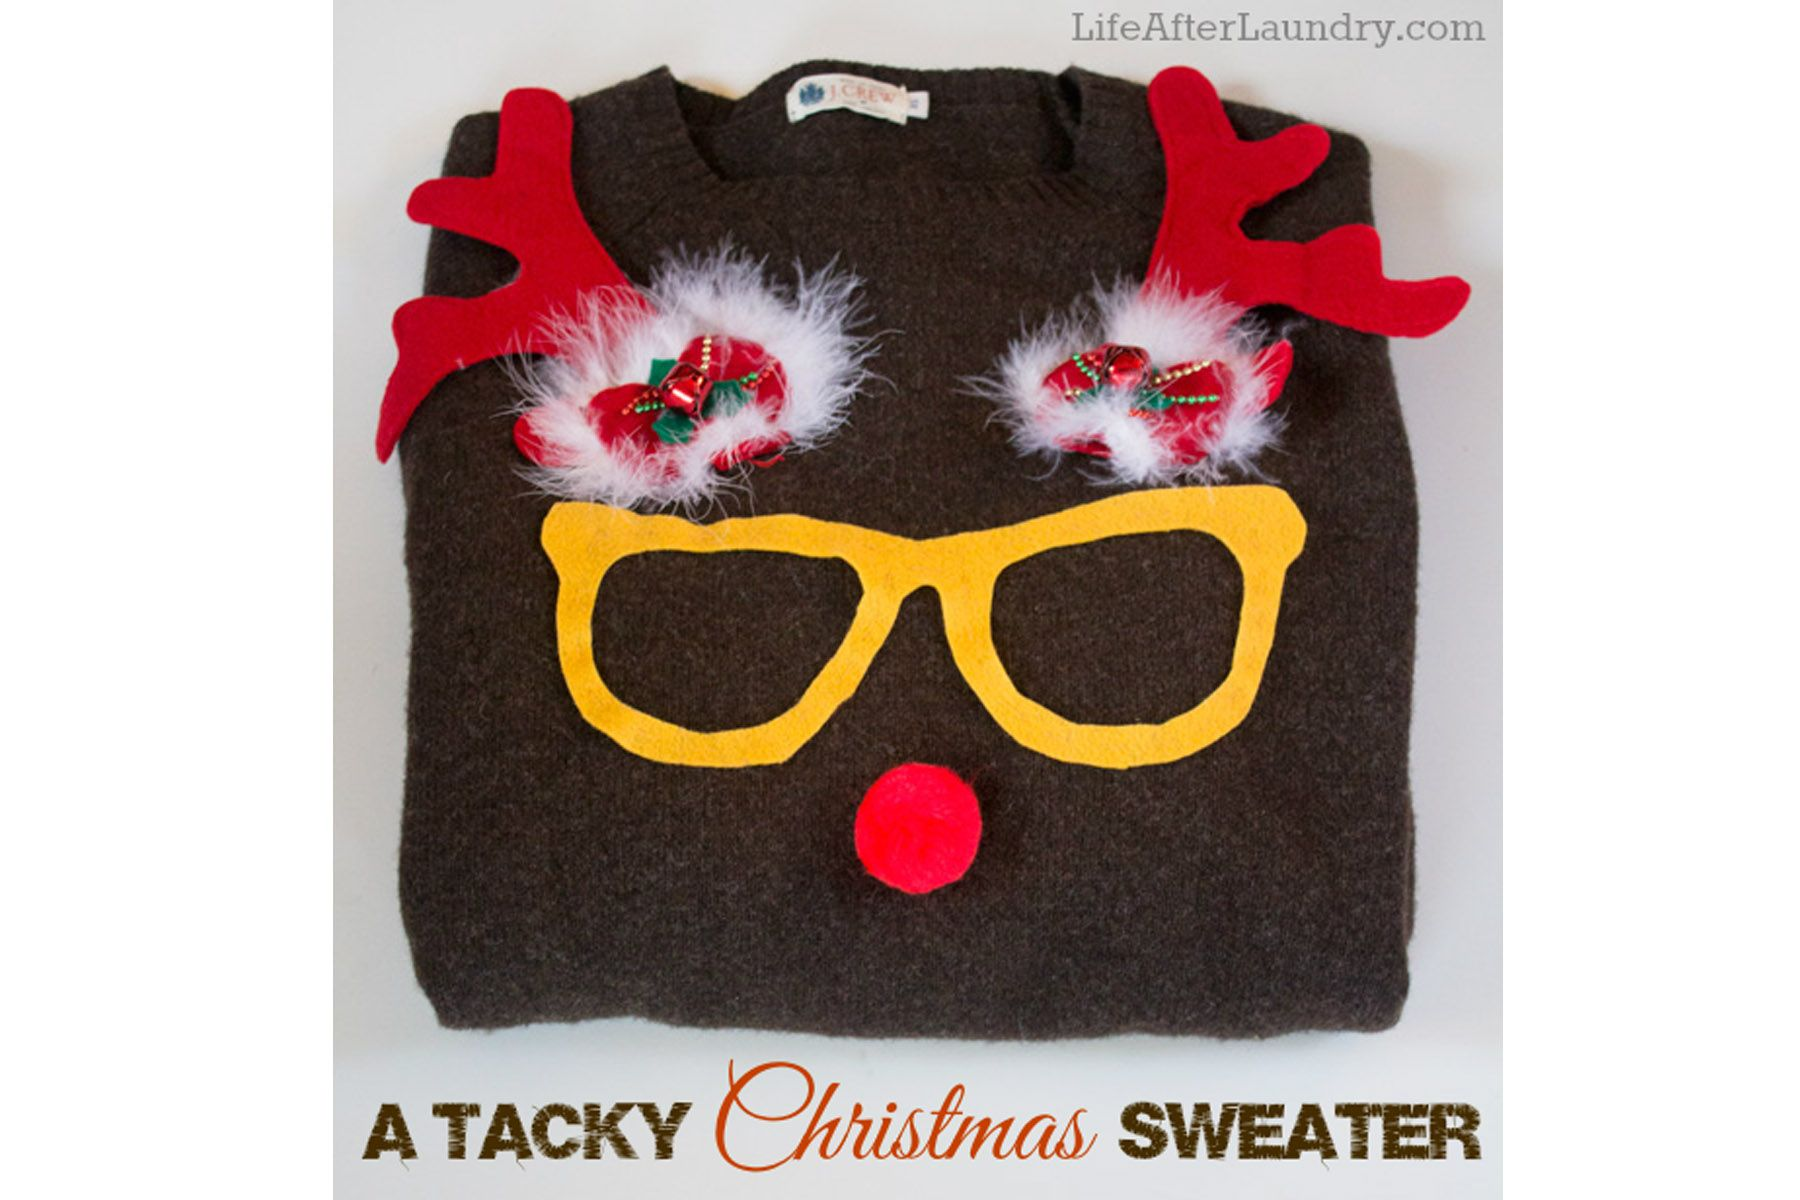 23 ugly christmas sweater ideas to buy and diy tacky christmas 23 ugly christmas sweater ideas to buy and diy tacky christmas sweaters for women solutioingenieria Gallery